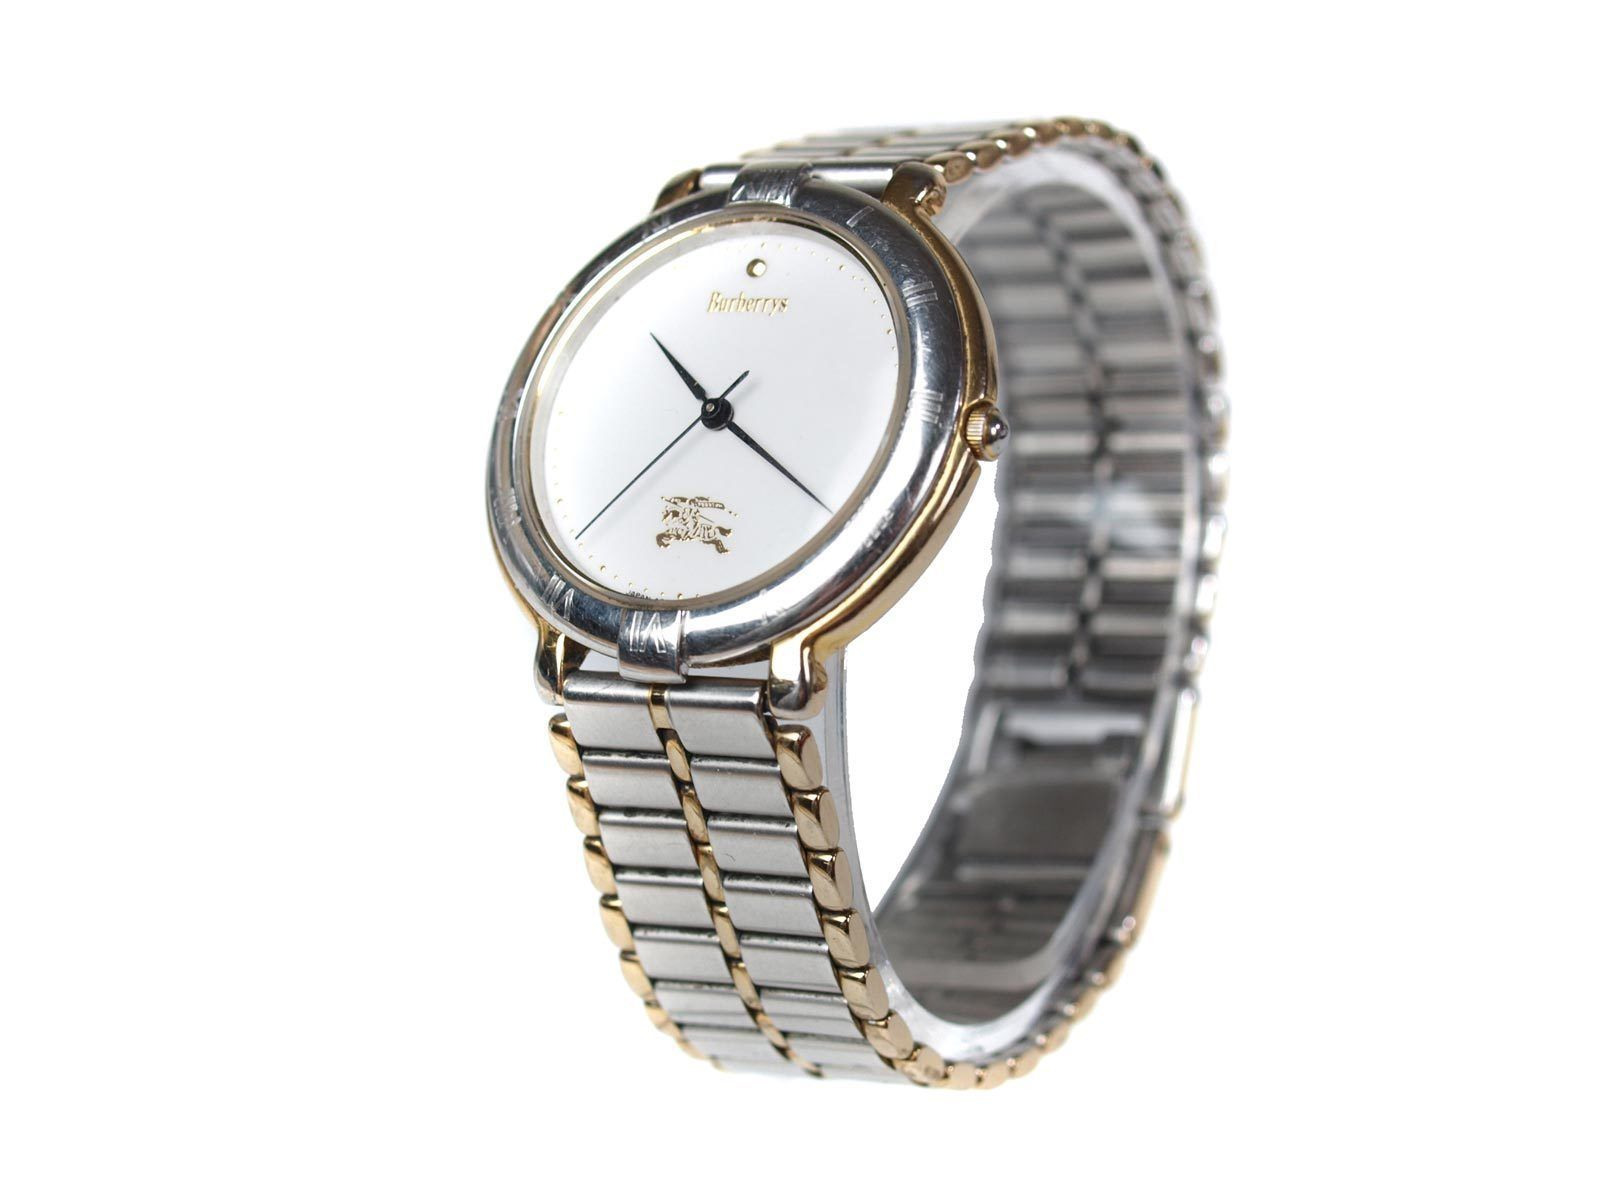 Authentic BURBERRYS White Dial Stainless Steel Women's Quartz Watch BW5114L